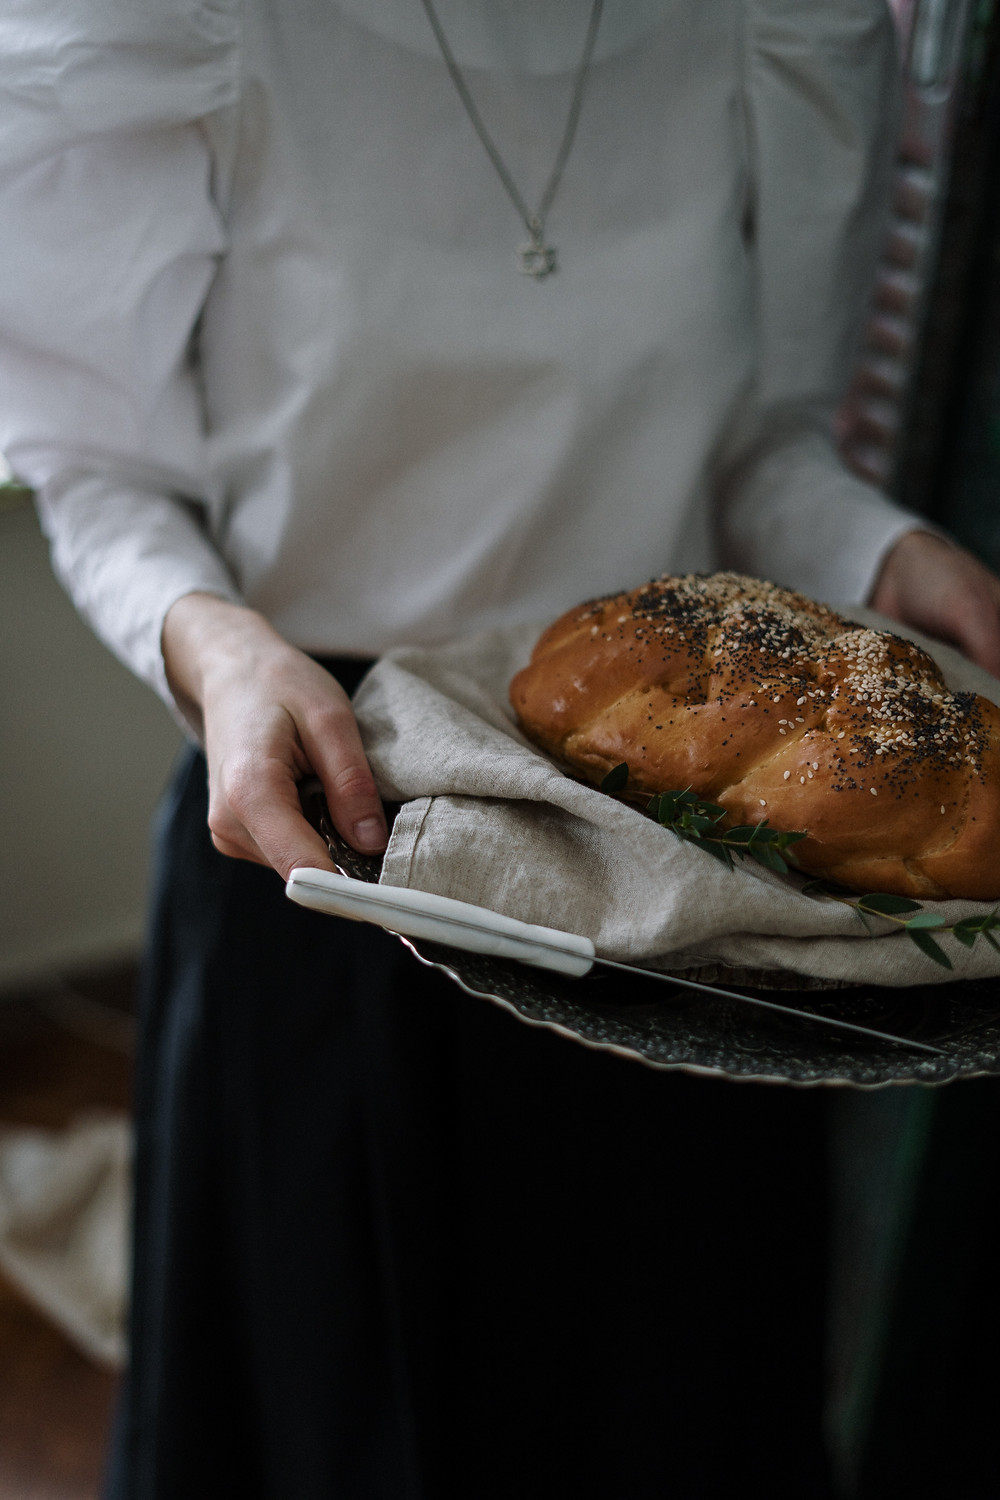 A woman carrying a platter with challah bread and knife on it, free image courtesy of Pexels